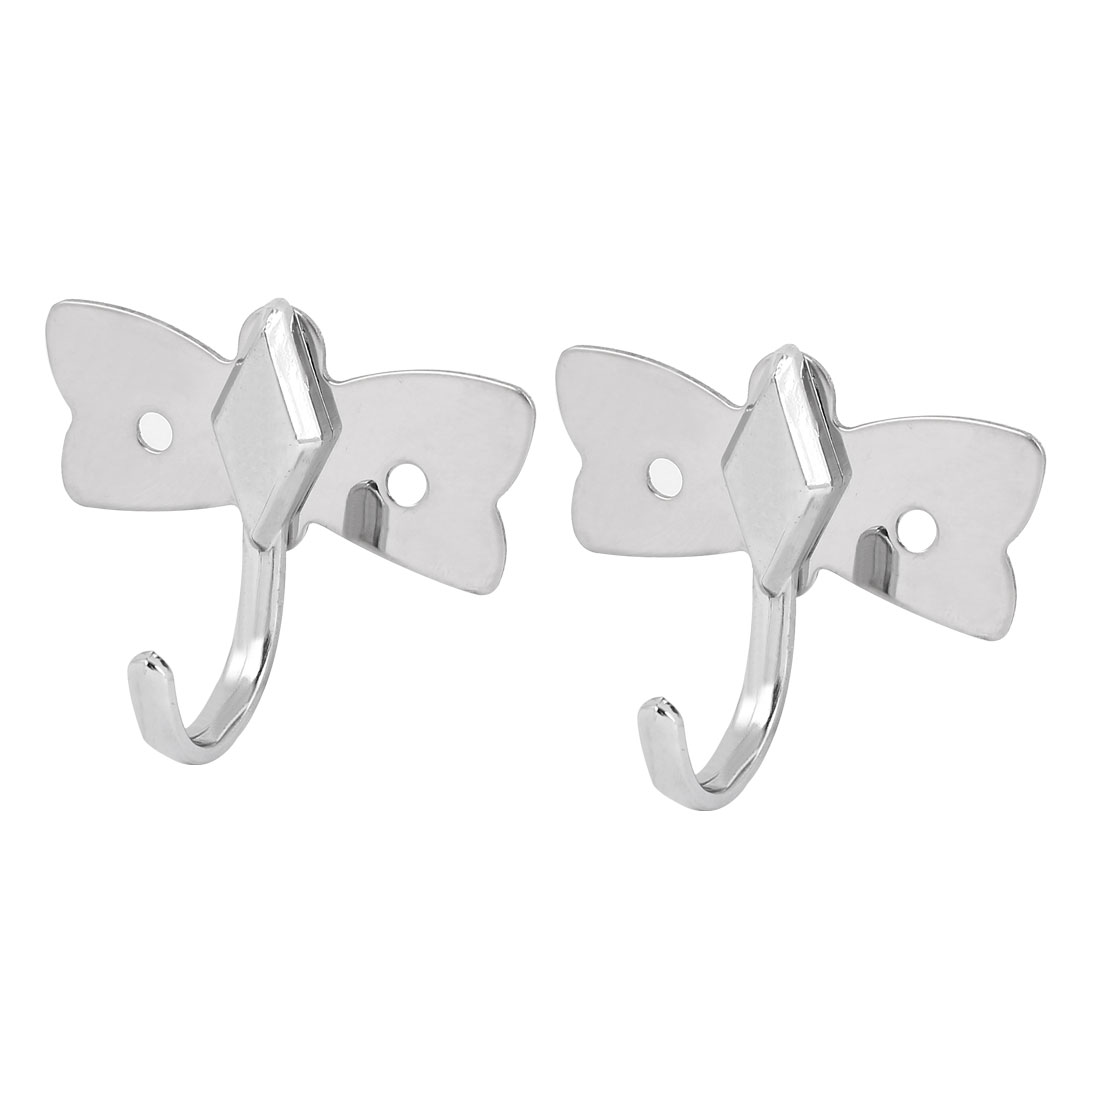 Bathroom Clothes Hat Single Hanger Stainless Steel Wall Hanging Hook 2pcs